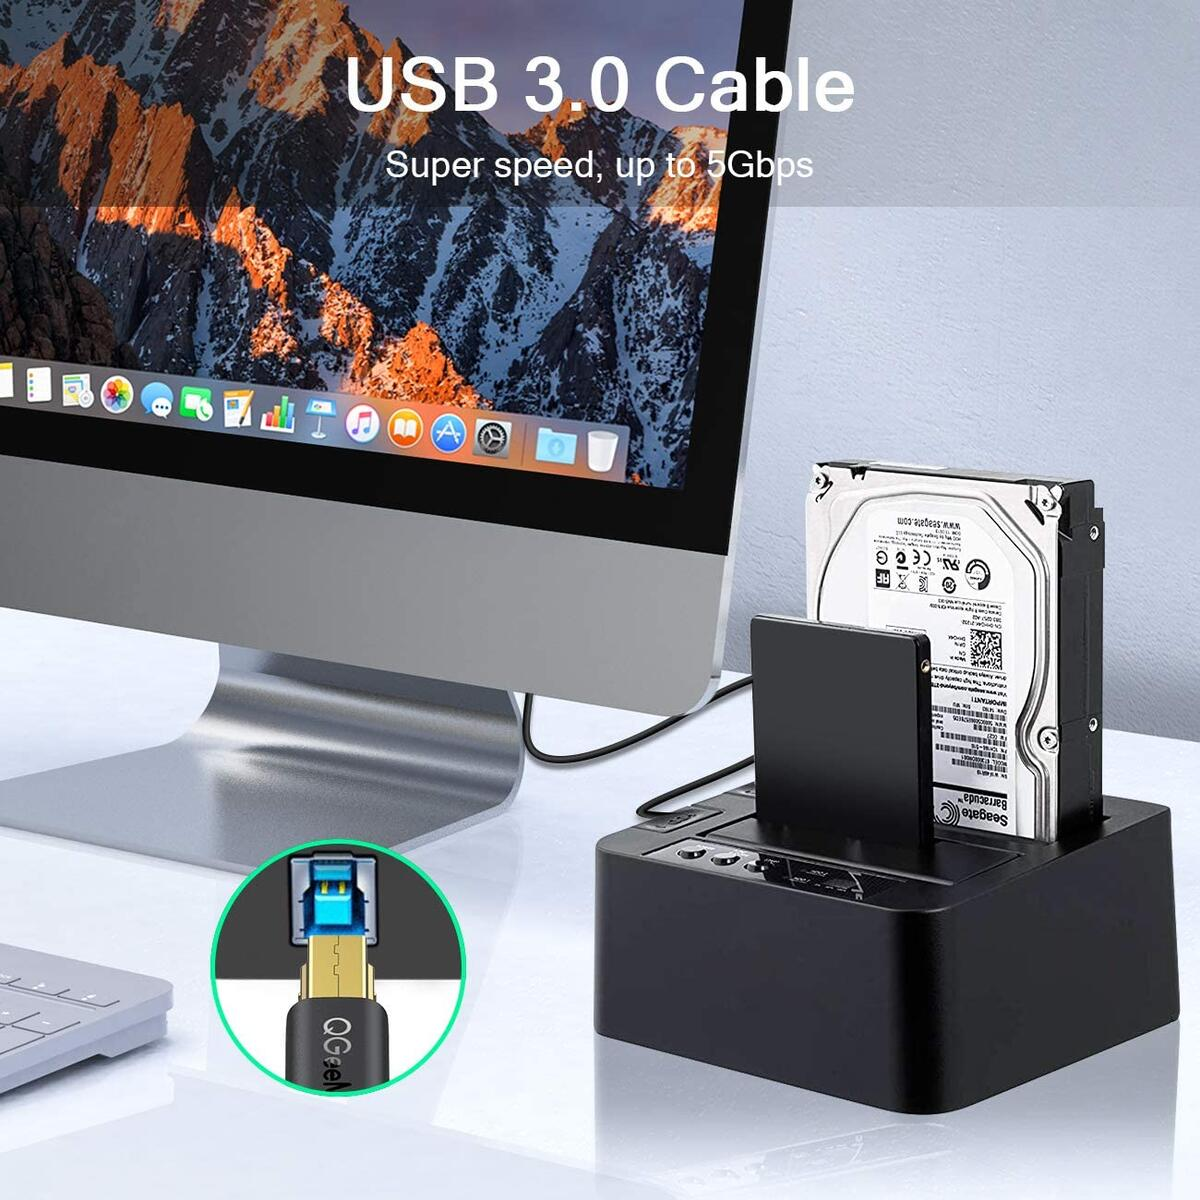 USB 3.0 Cable 3FT,  Superspeed USB 3.0 Cable A Male to B Male Compatible with Docking Station, Monitor, External Hard Drivers, Scanner and More, USB 3.0 Upstream Cable